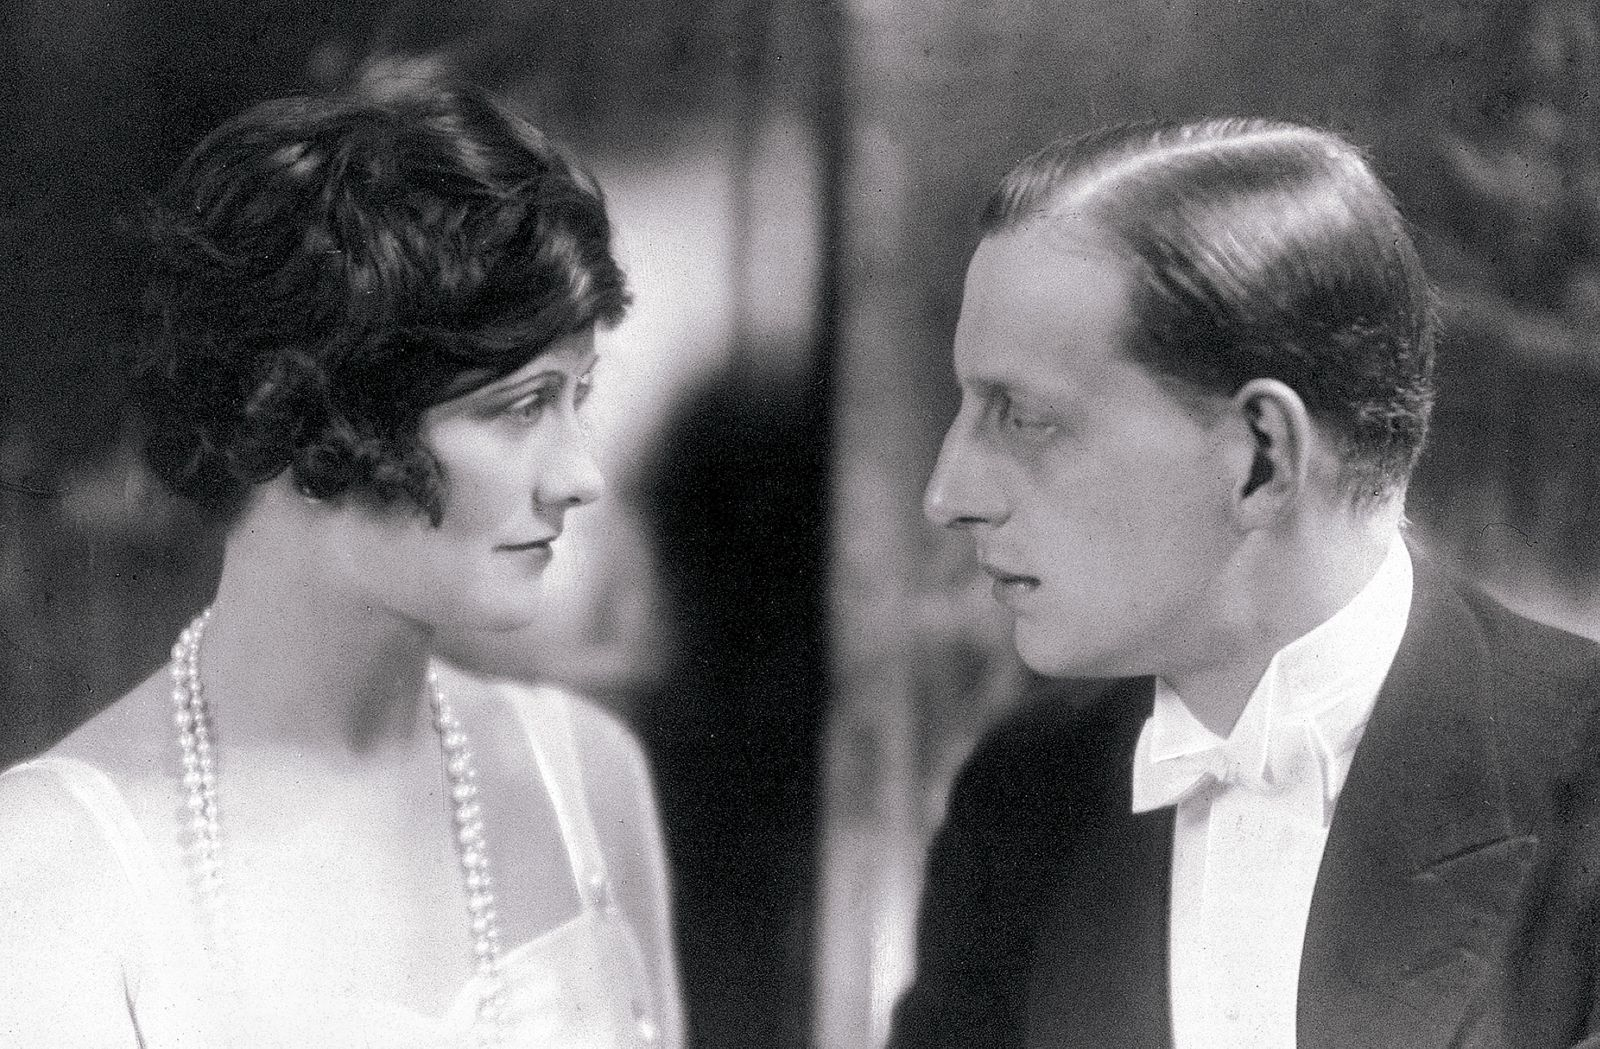 Gabrielle Chanel and the Grand Duke Dimitri